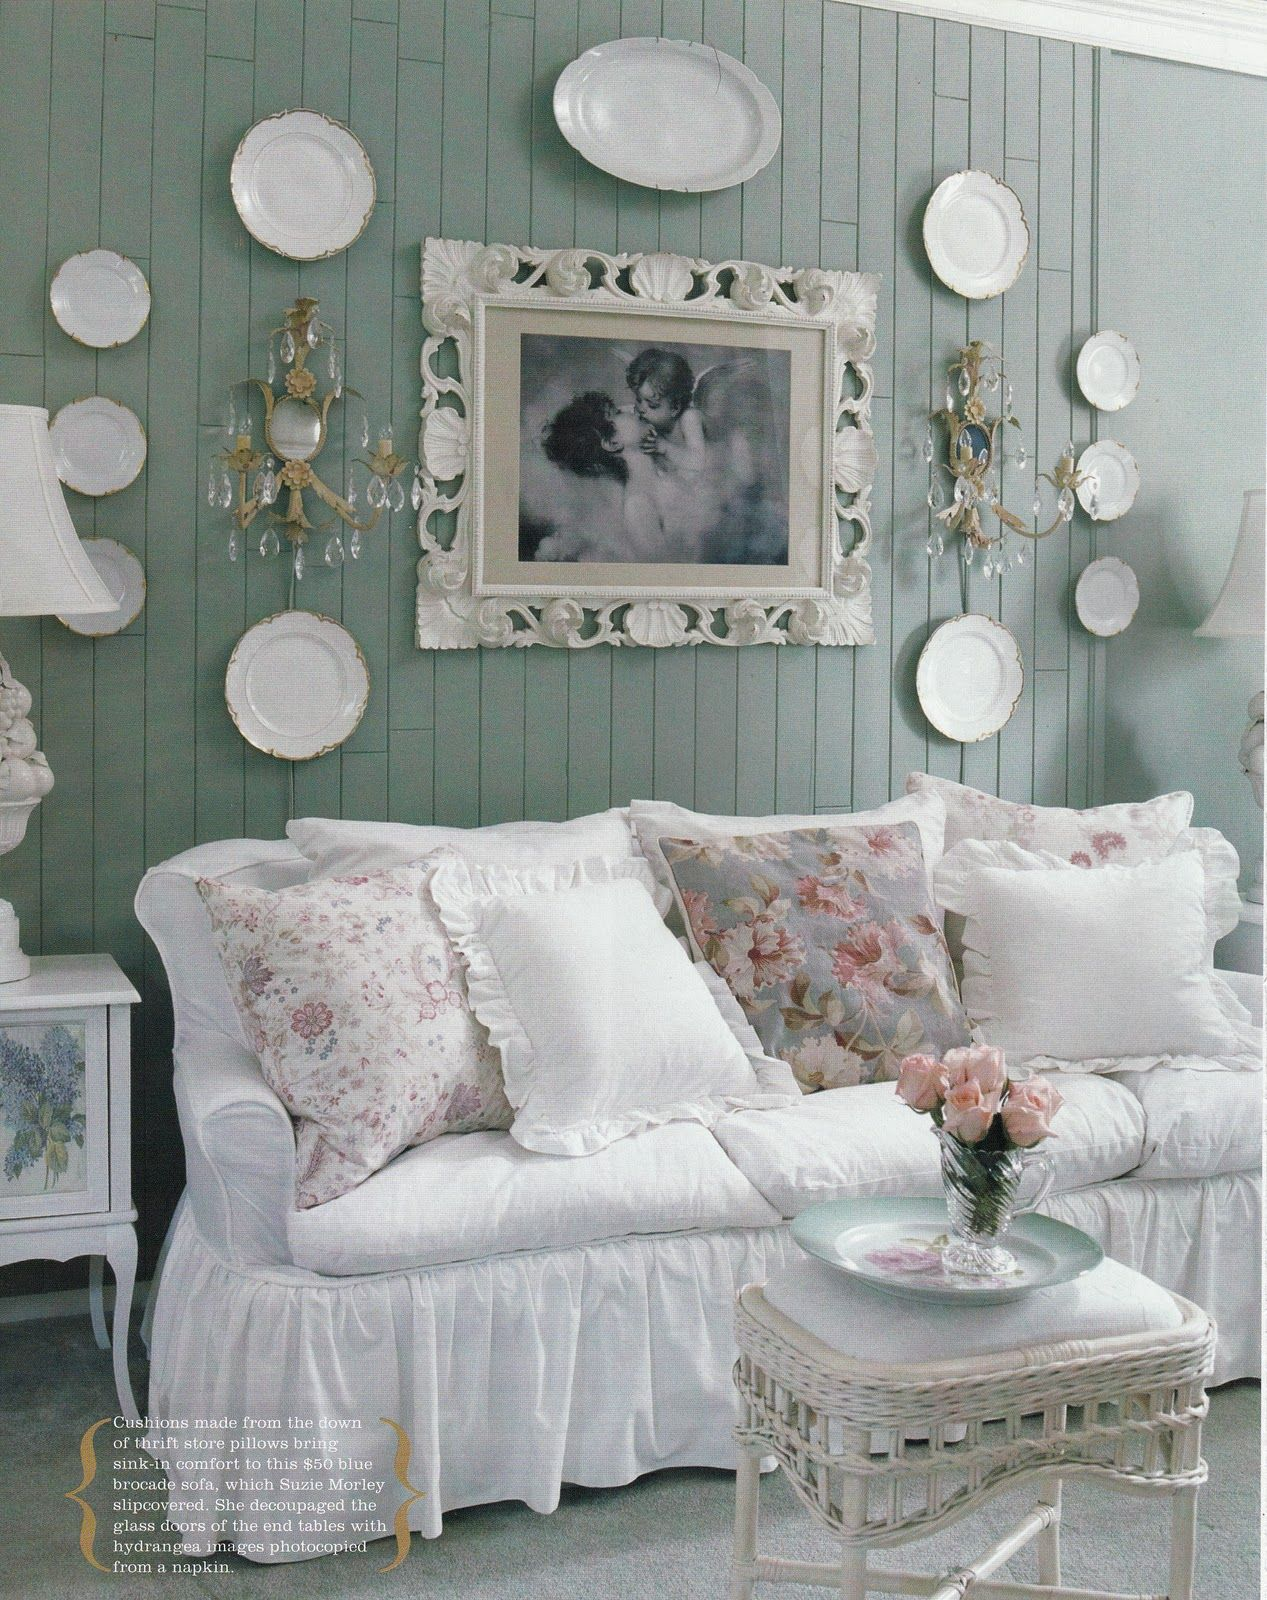 Canapé Shabby Chic a blog about interior design, books, art, gardens, animals